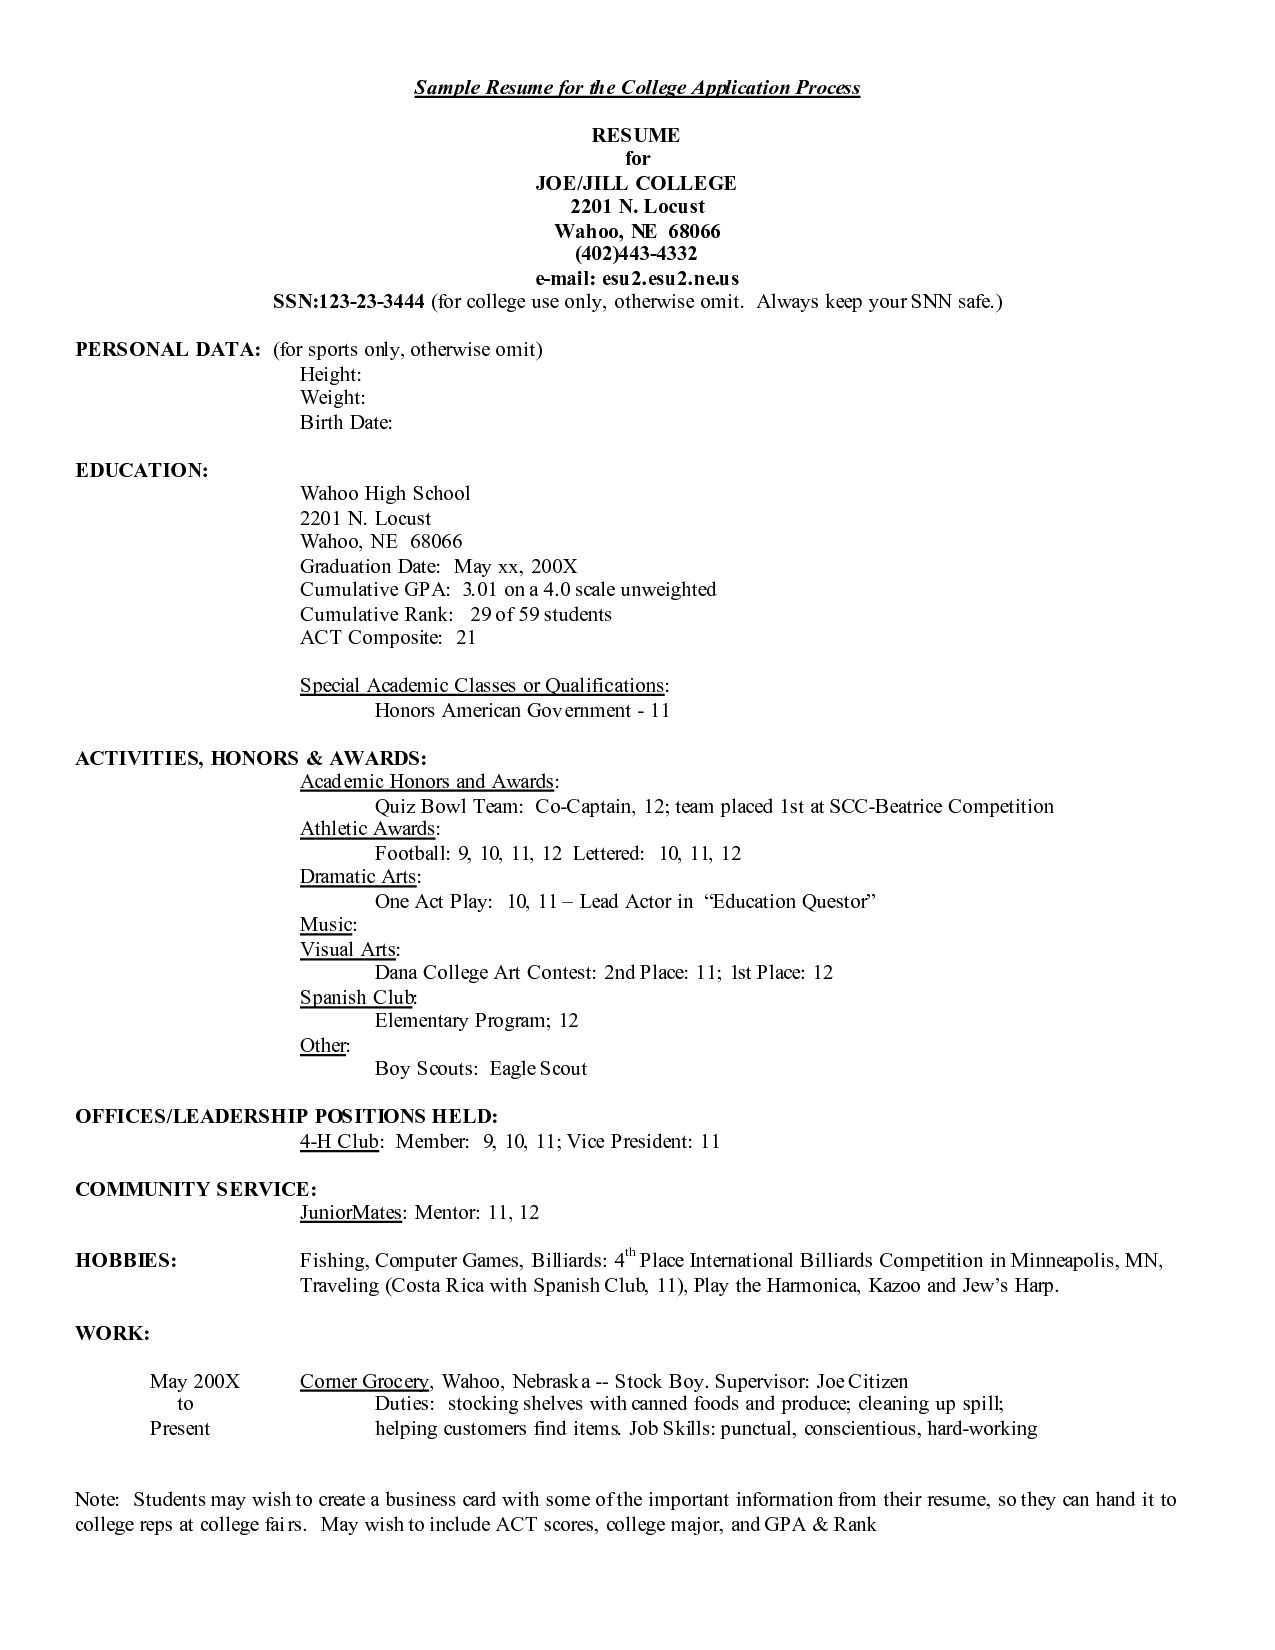 College Students Resume Samples Excellent Resume Template for College Application 27 Popul